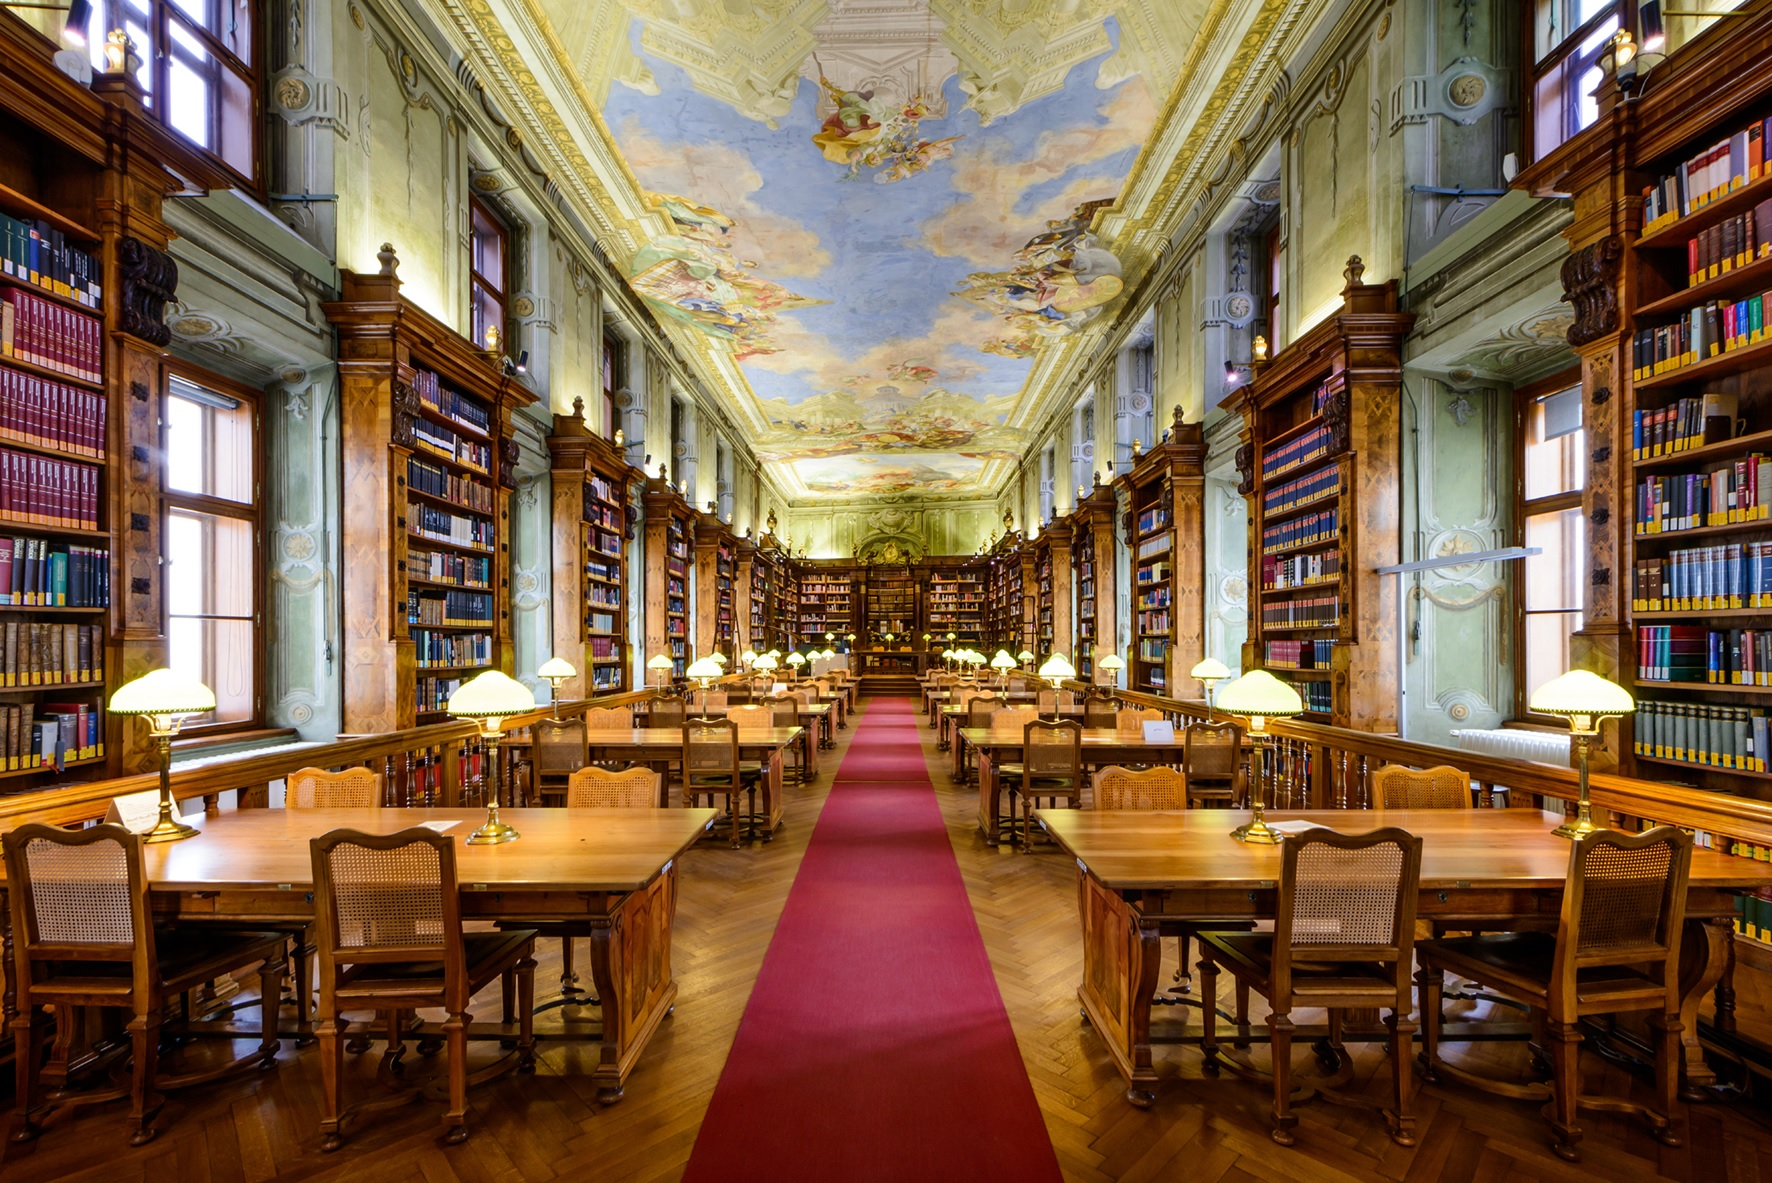 austrian national library 04.jpg